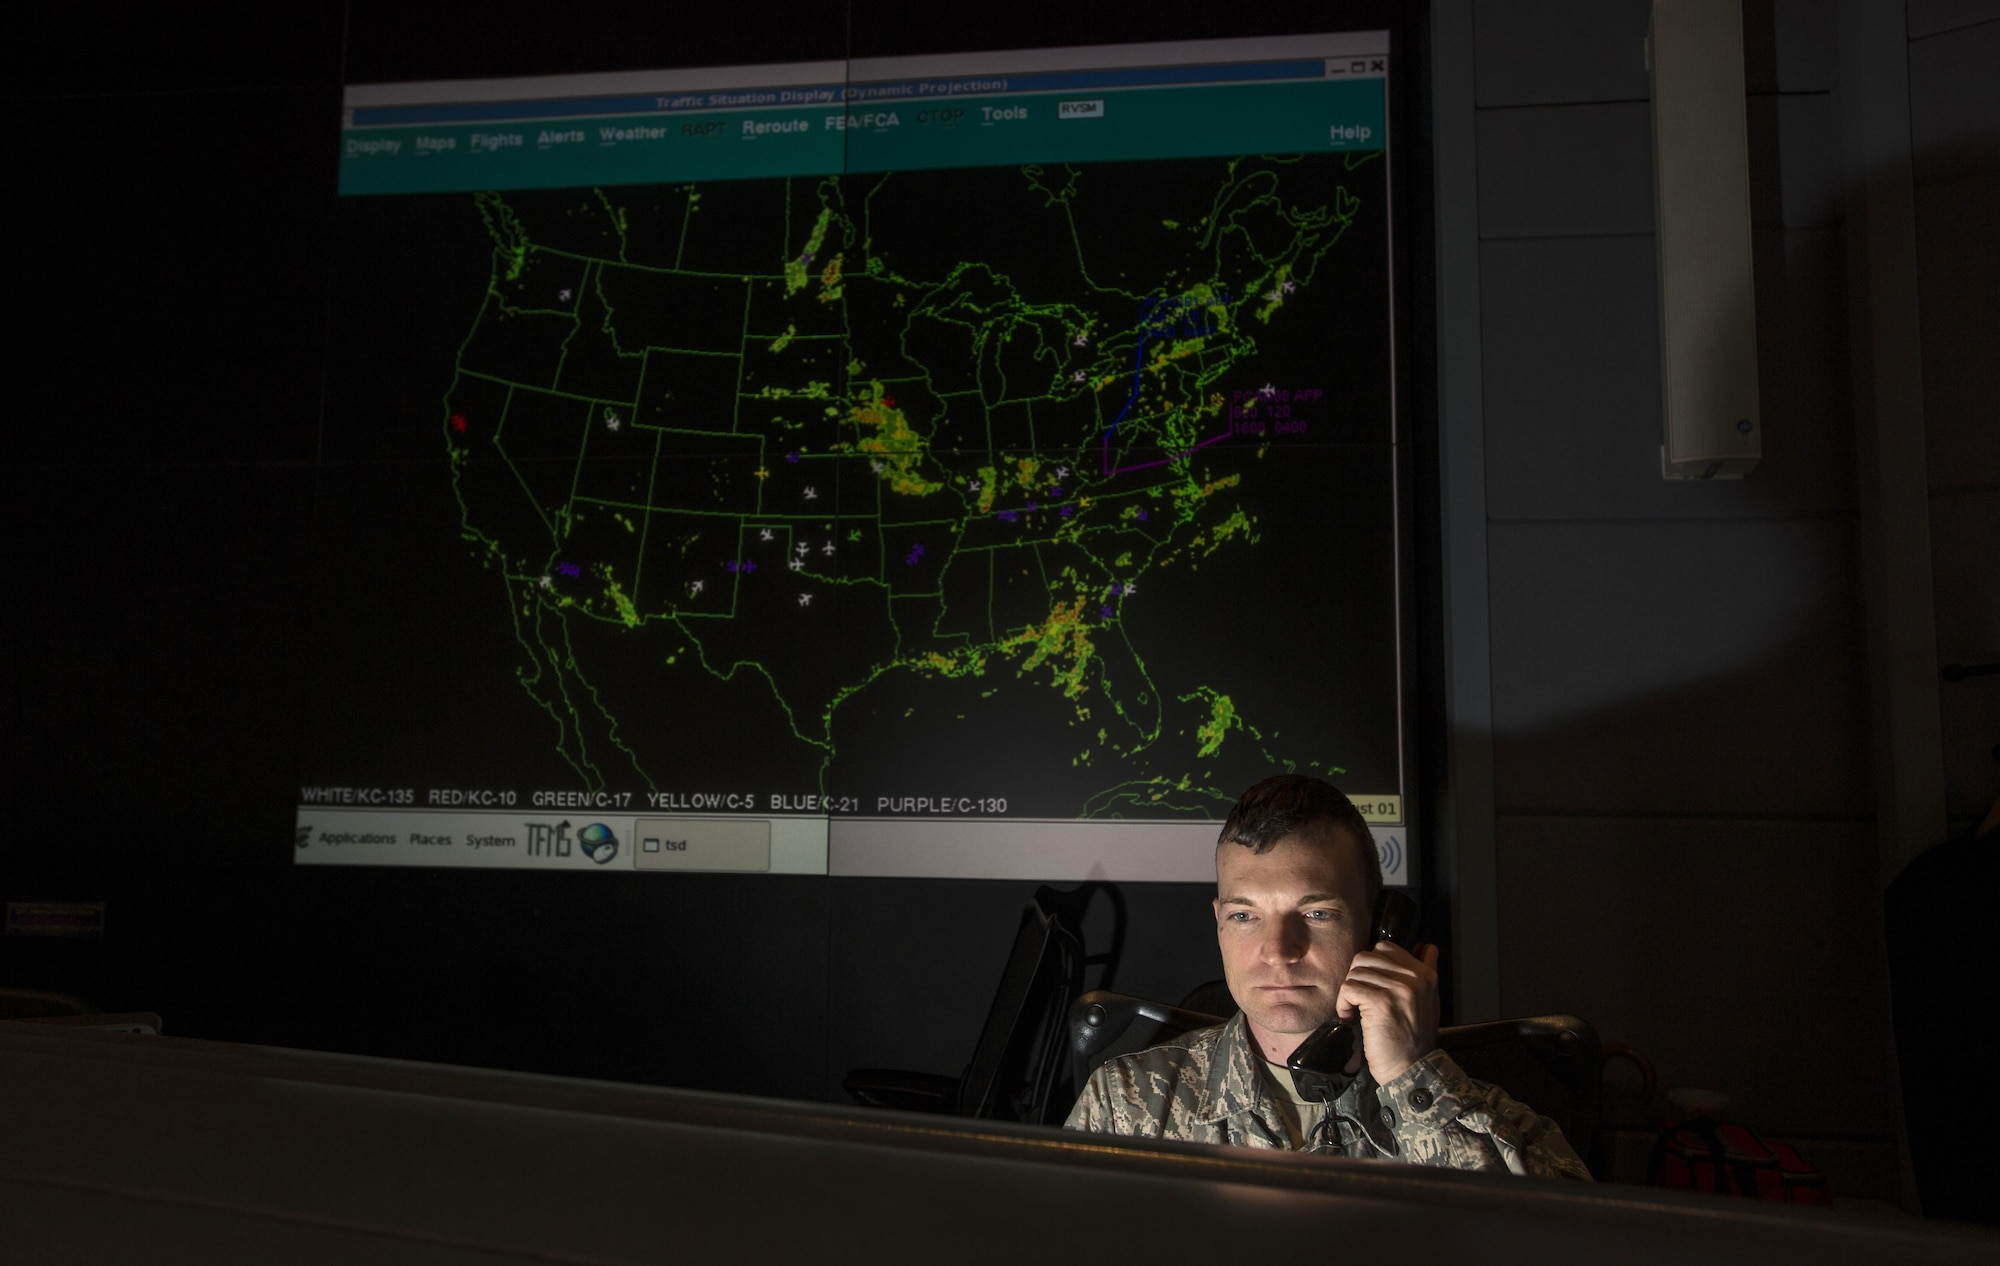 Tech. Sgt. James Sayres, a channel mission manager, checks the air schedule for the 618th Tanker Airlift Control Center at Scott Air Force Base, Ill., Aug. 1, 2016. Ongoing work by the Air Force and Army has filled training schedules by streamlining the Joint Airborne/Air Transportability Training program, an online system used by military units to request air support. (U.S. Air Force photo/Master Sgt. Brian Ferguson)